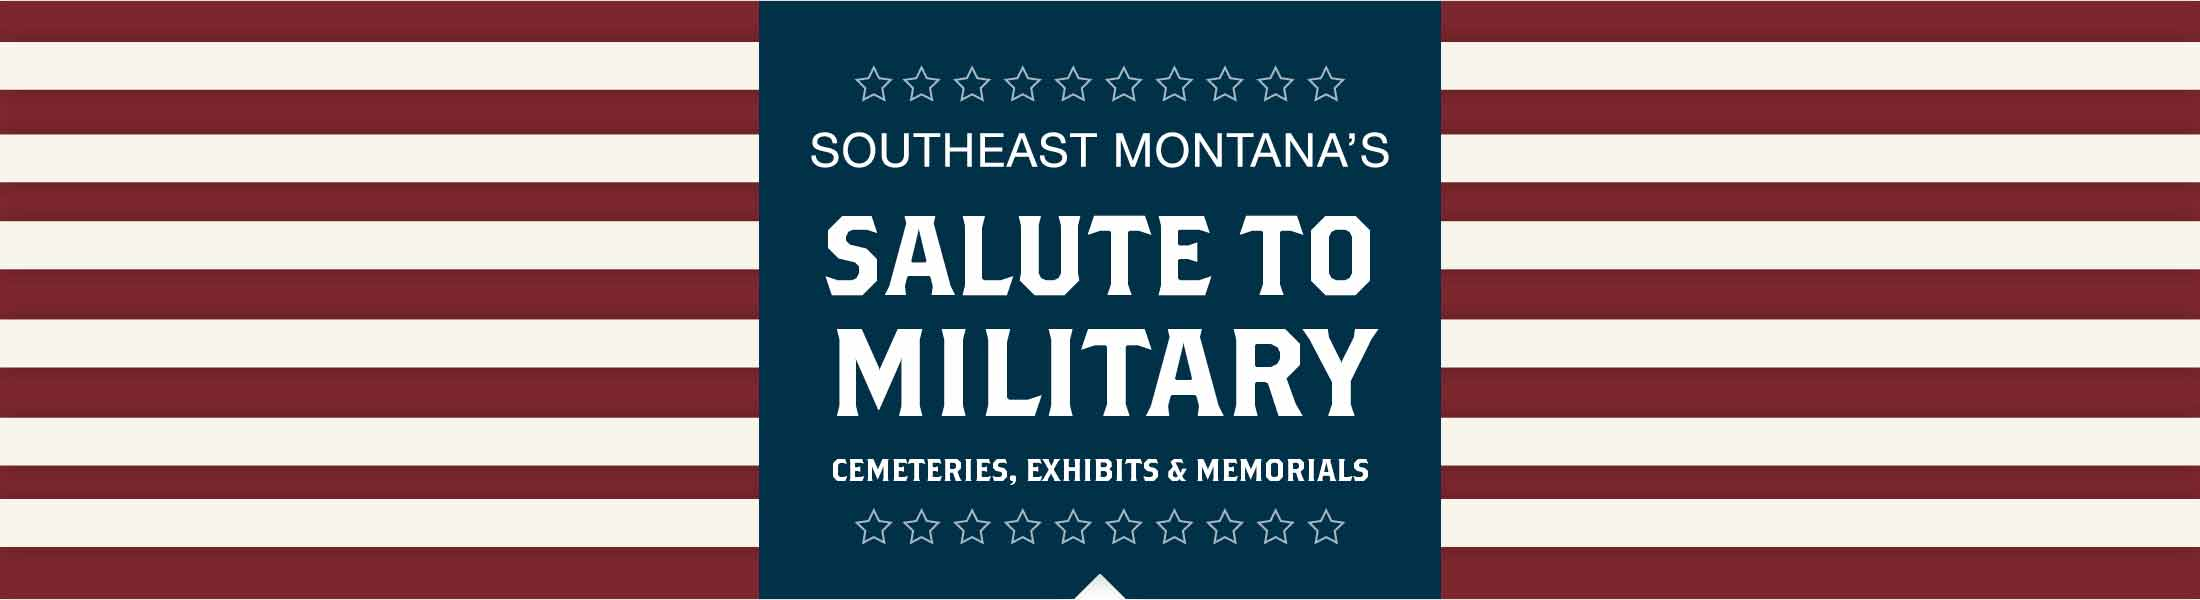 Honoring History in Southeast Montana